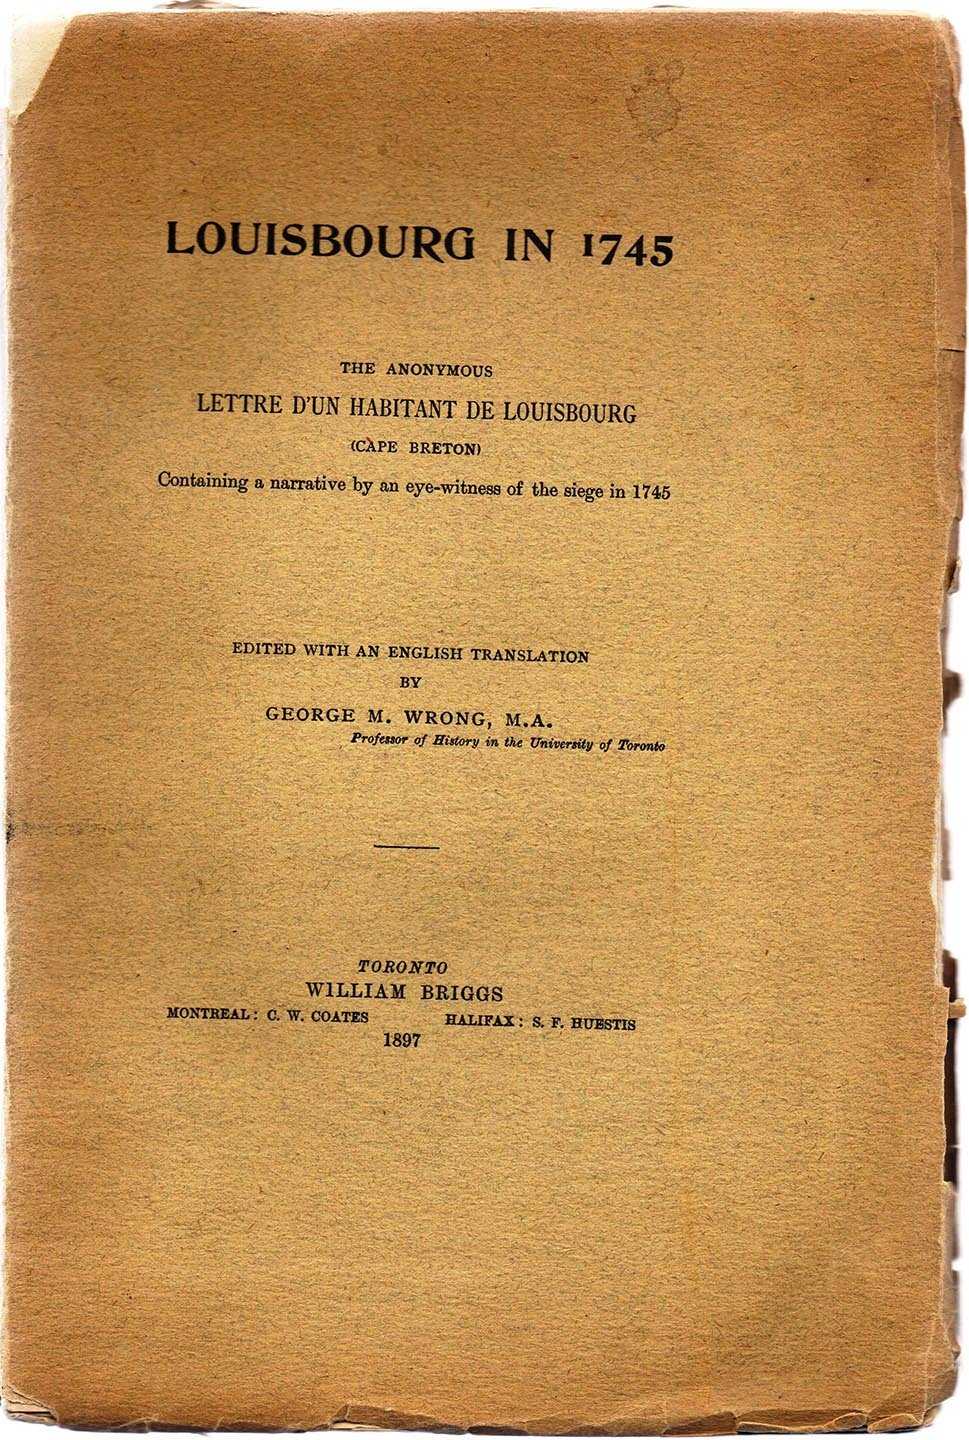 Louisburg in 1745. The Anonymous Lettre D'Un Habitant De Louisburg (Cape Breton) Containing a narrative by an eye-witness of the siege in 1745